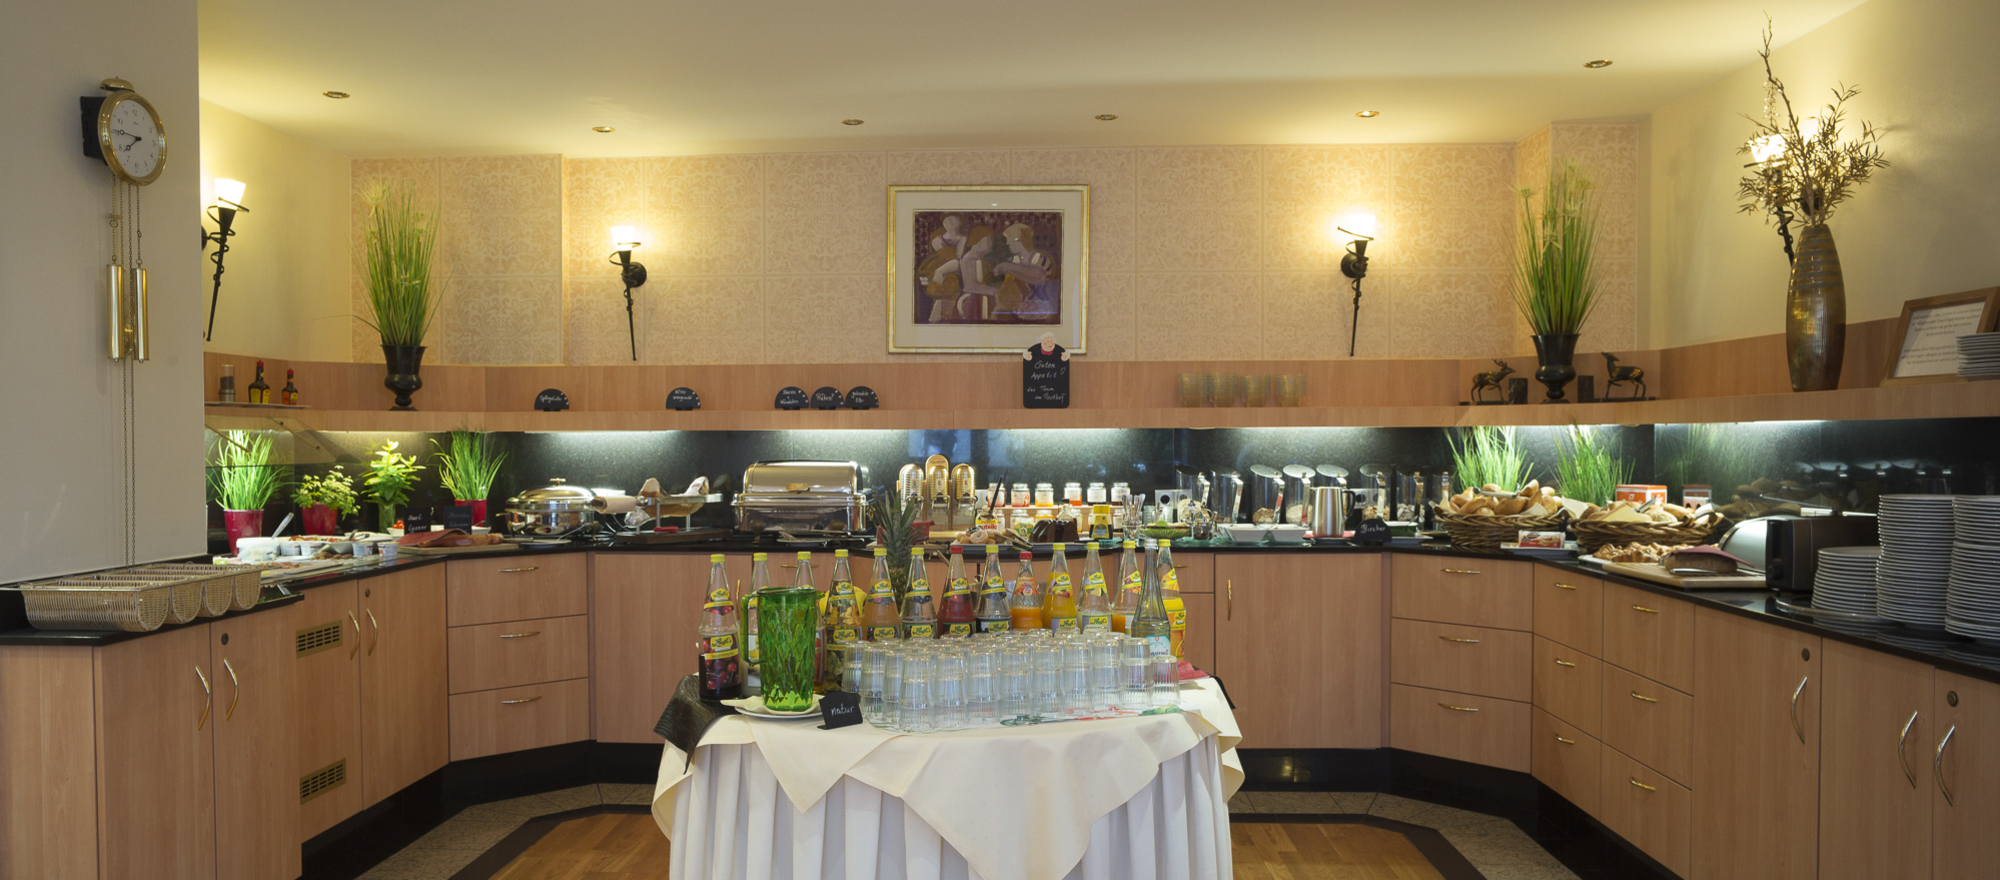 Rich breakfast buffet in the Ringhotel Posthof garni, 3-star superior hotel in Saarlouis